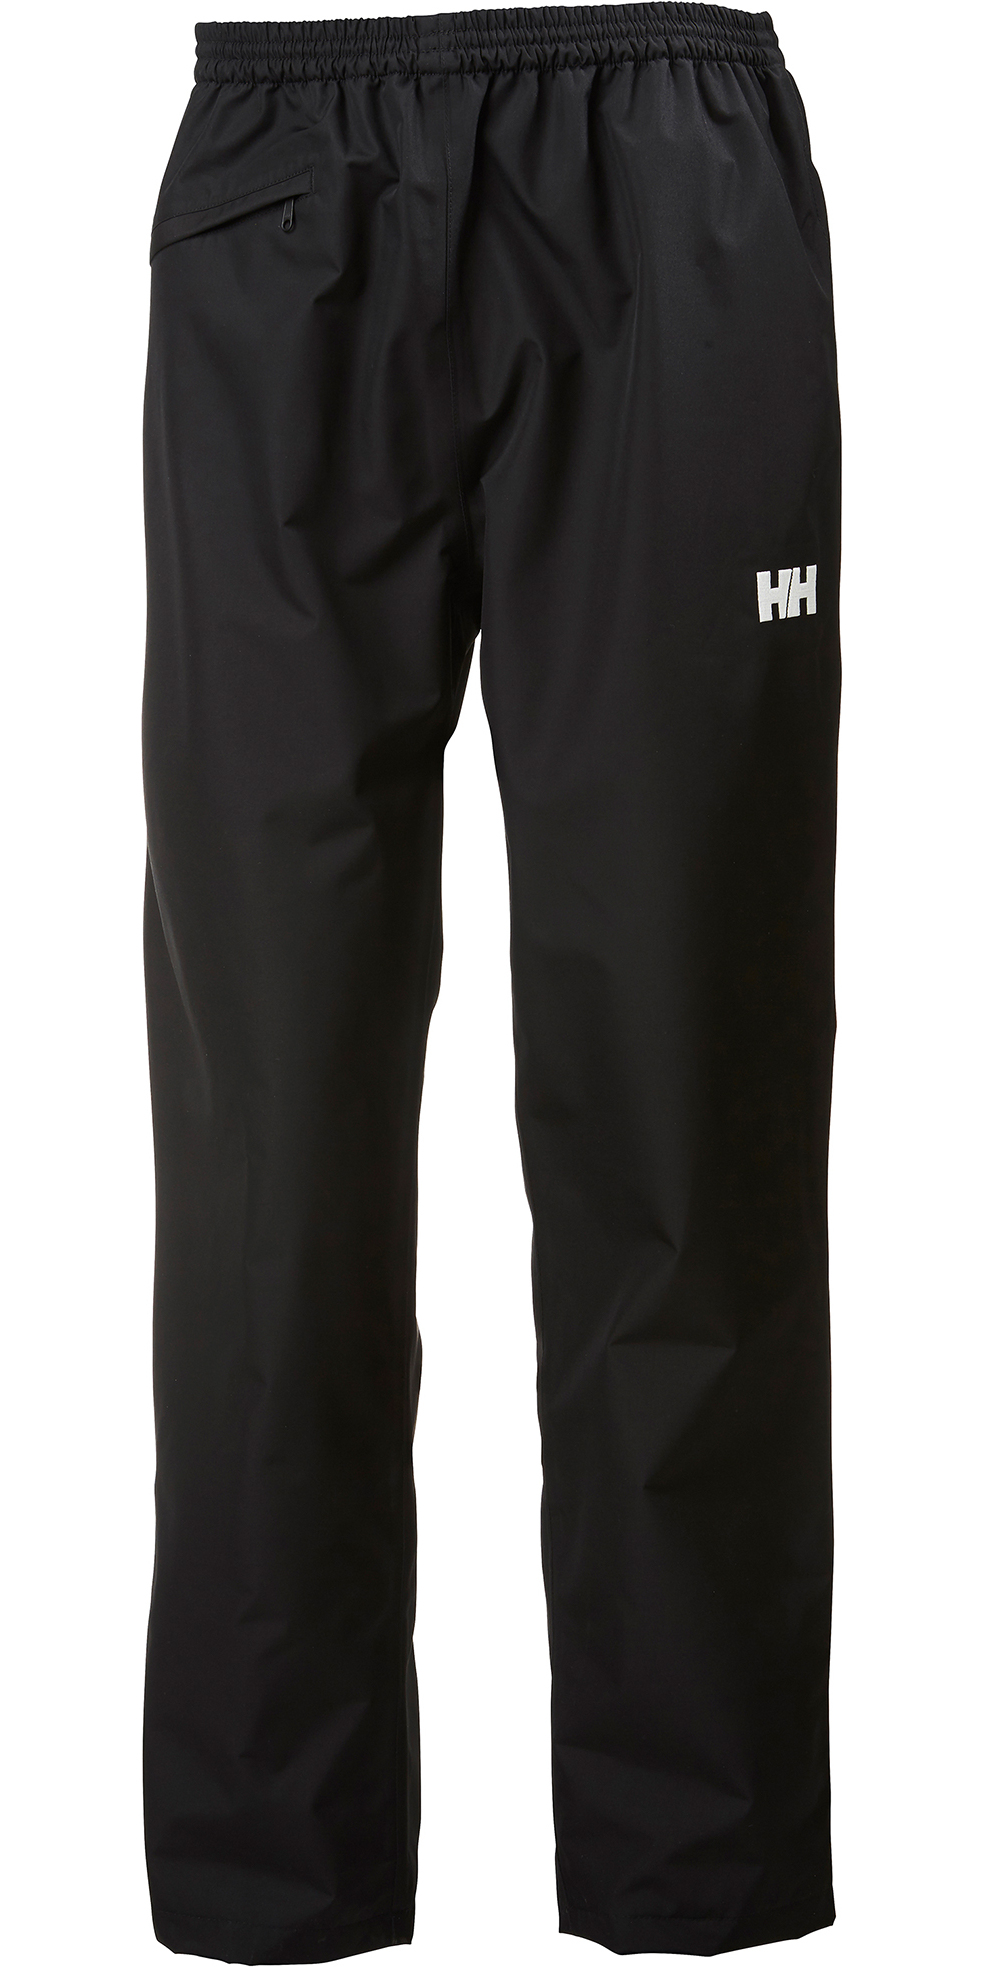 256c03e9dd Helly Hansen Pants Dubliner Sailing Trousers 62652| Sailing| Yachting |  Trouser | Wetsuitoutlet | Wetsuit Outlet